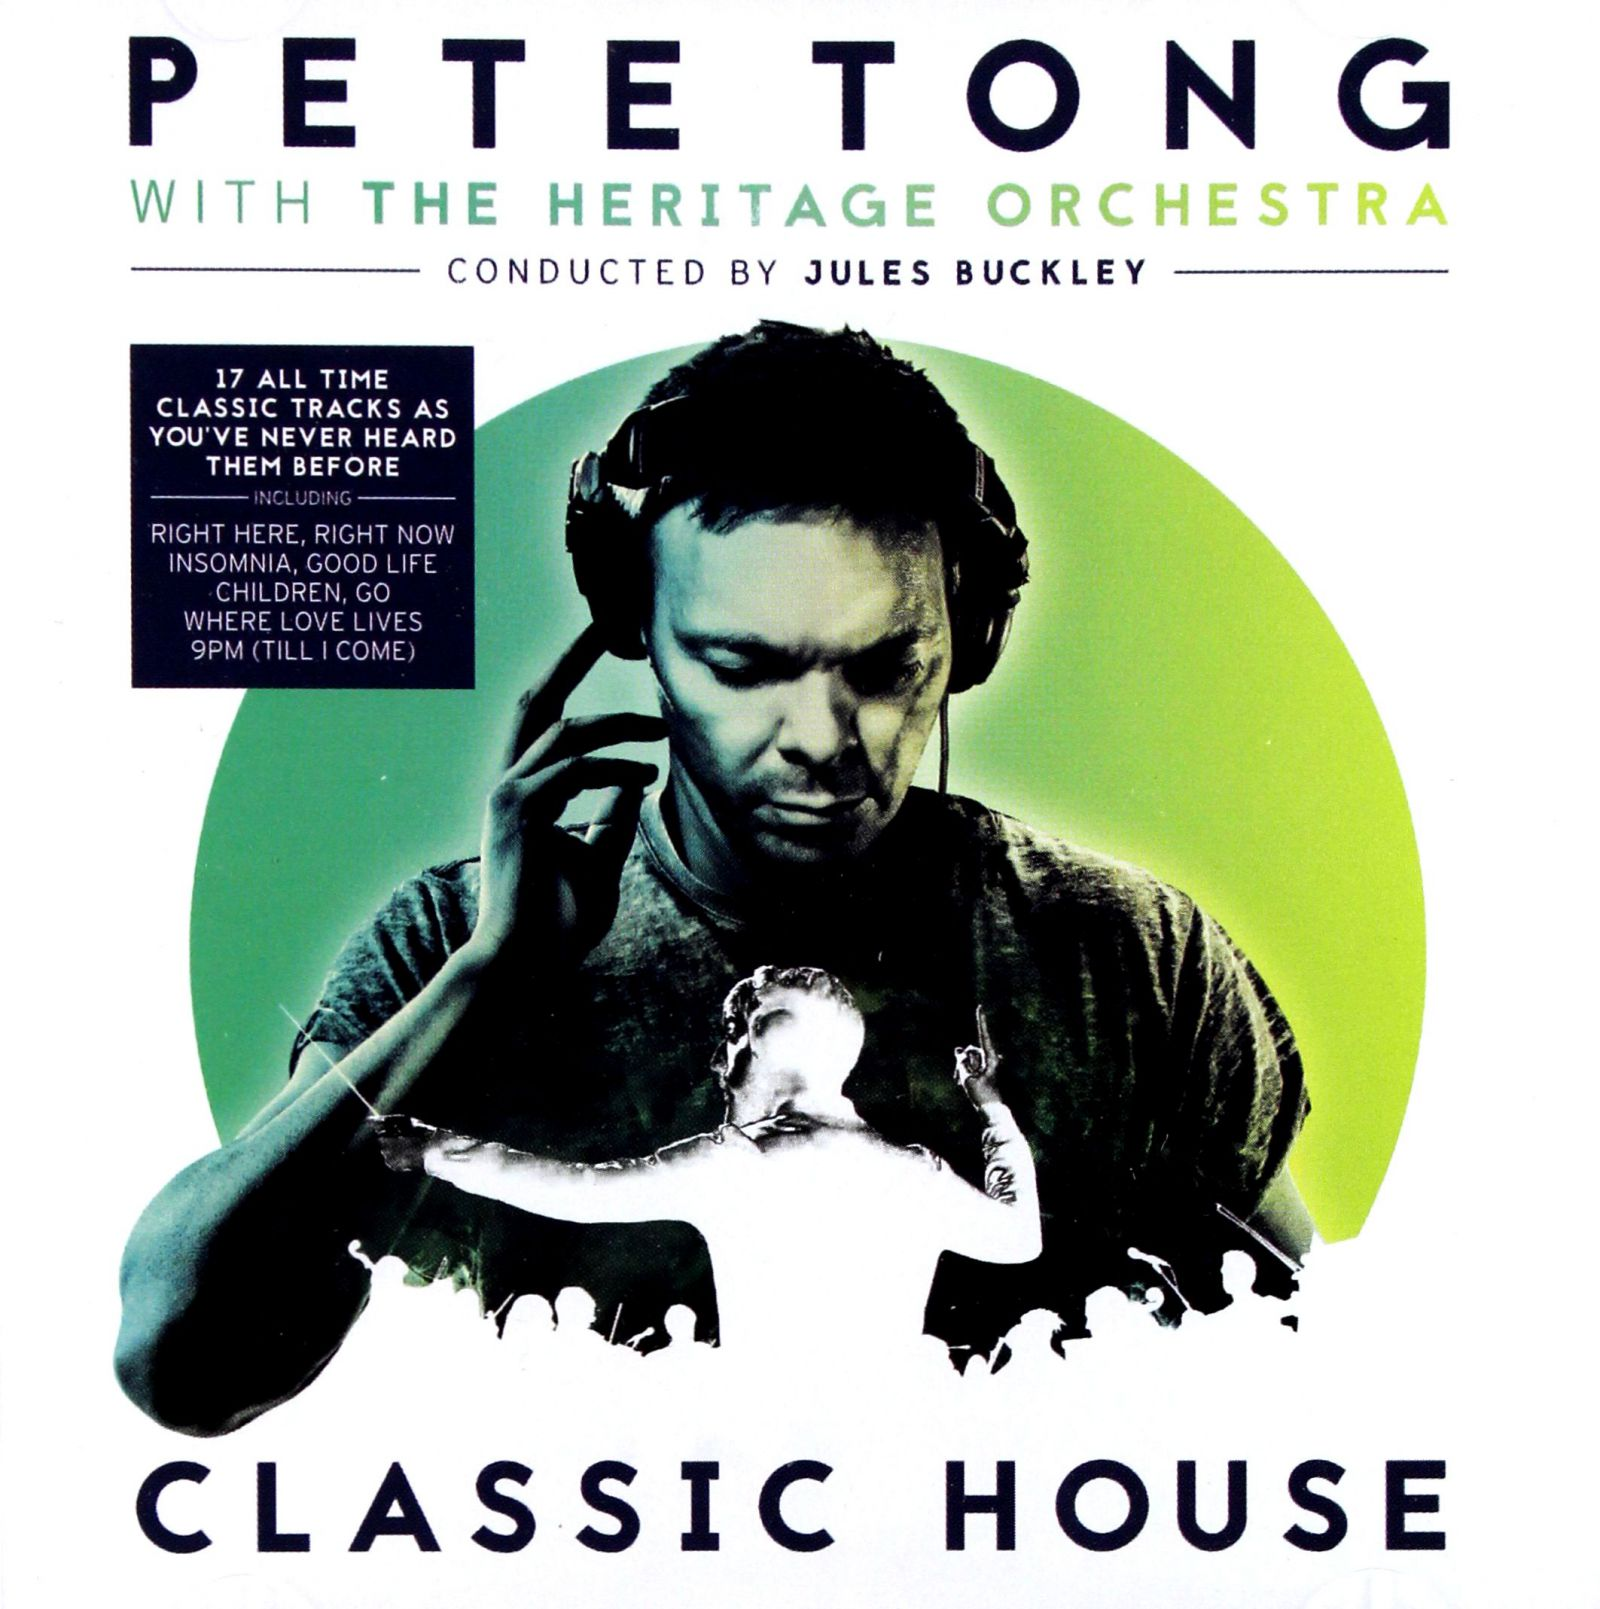 PETE TONG WITH THE HERITAGE ORCHESTRA: CLASSIC HOU